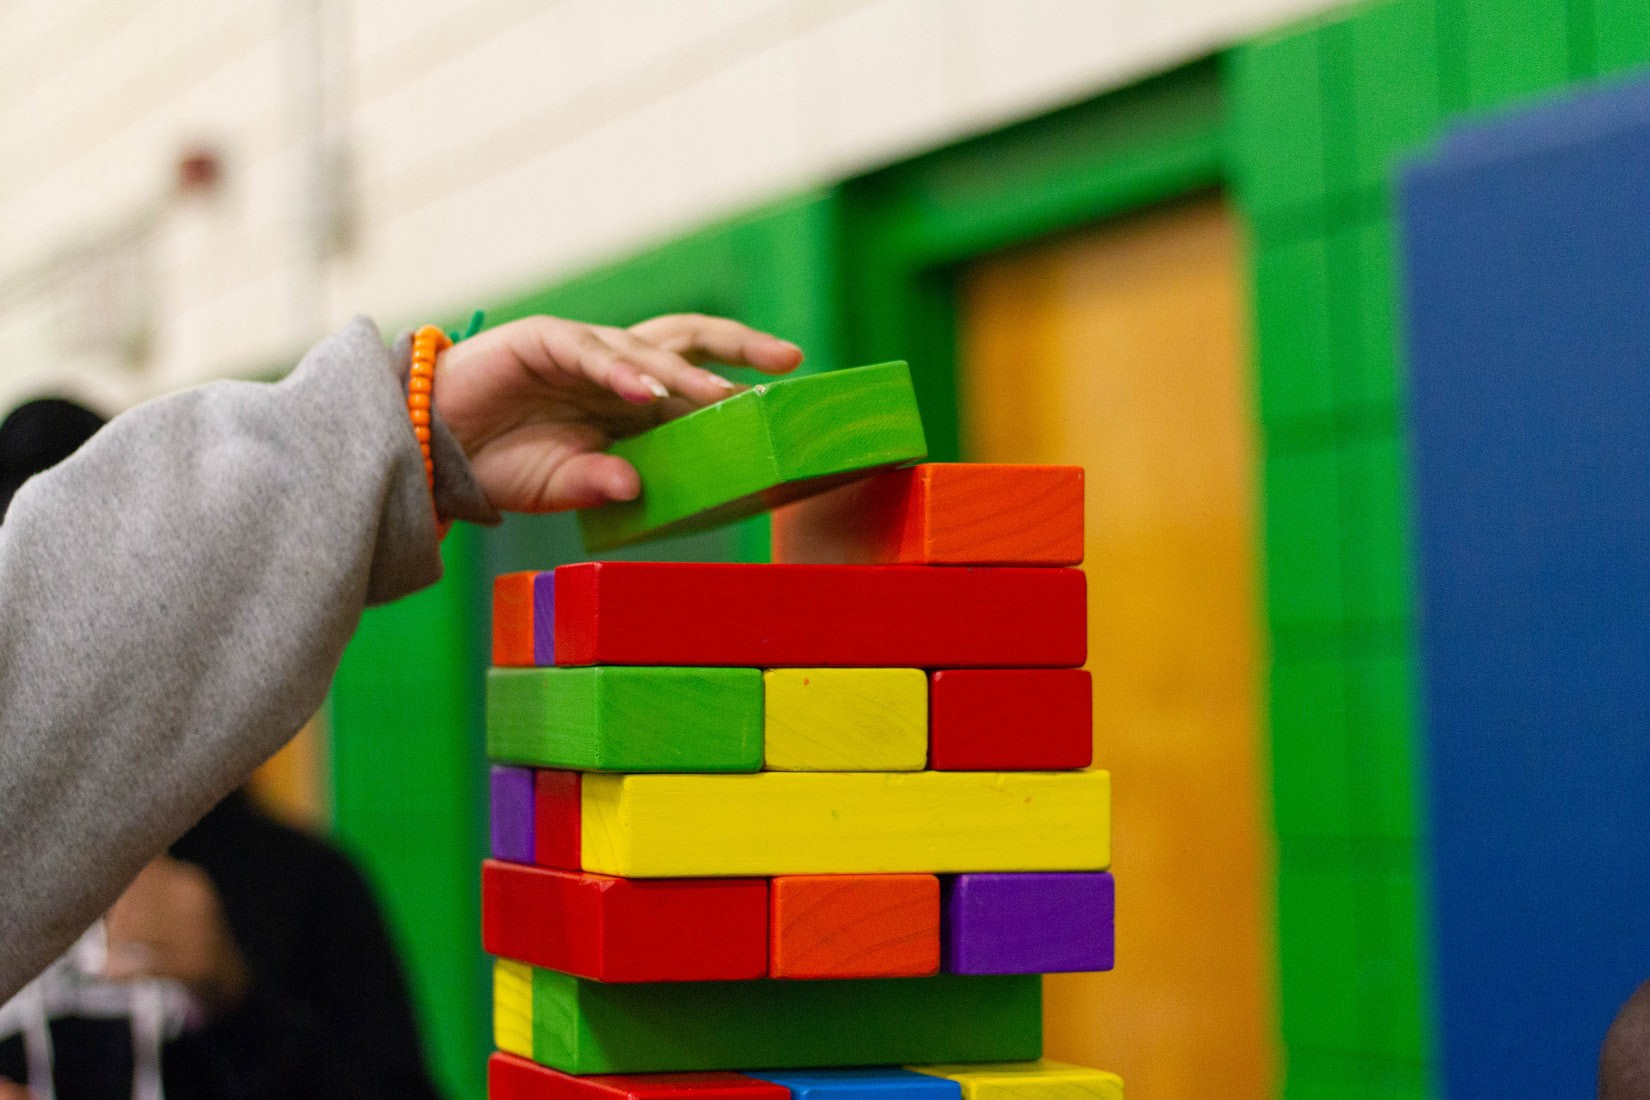 Person stacking colorful blocks on top of each other.